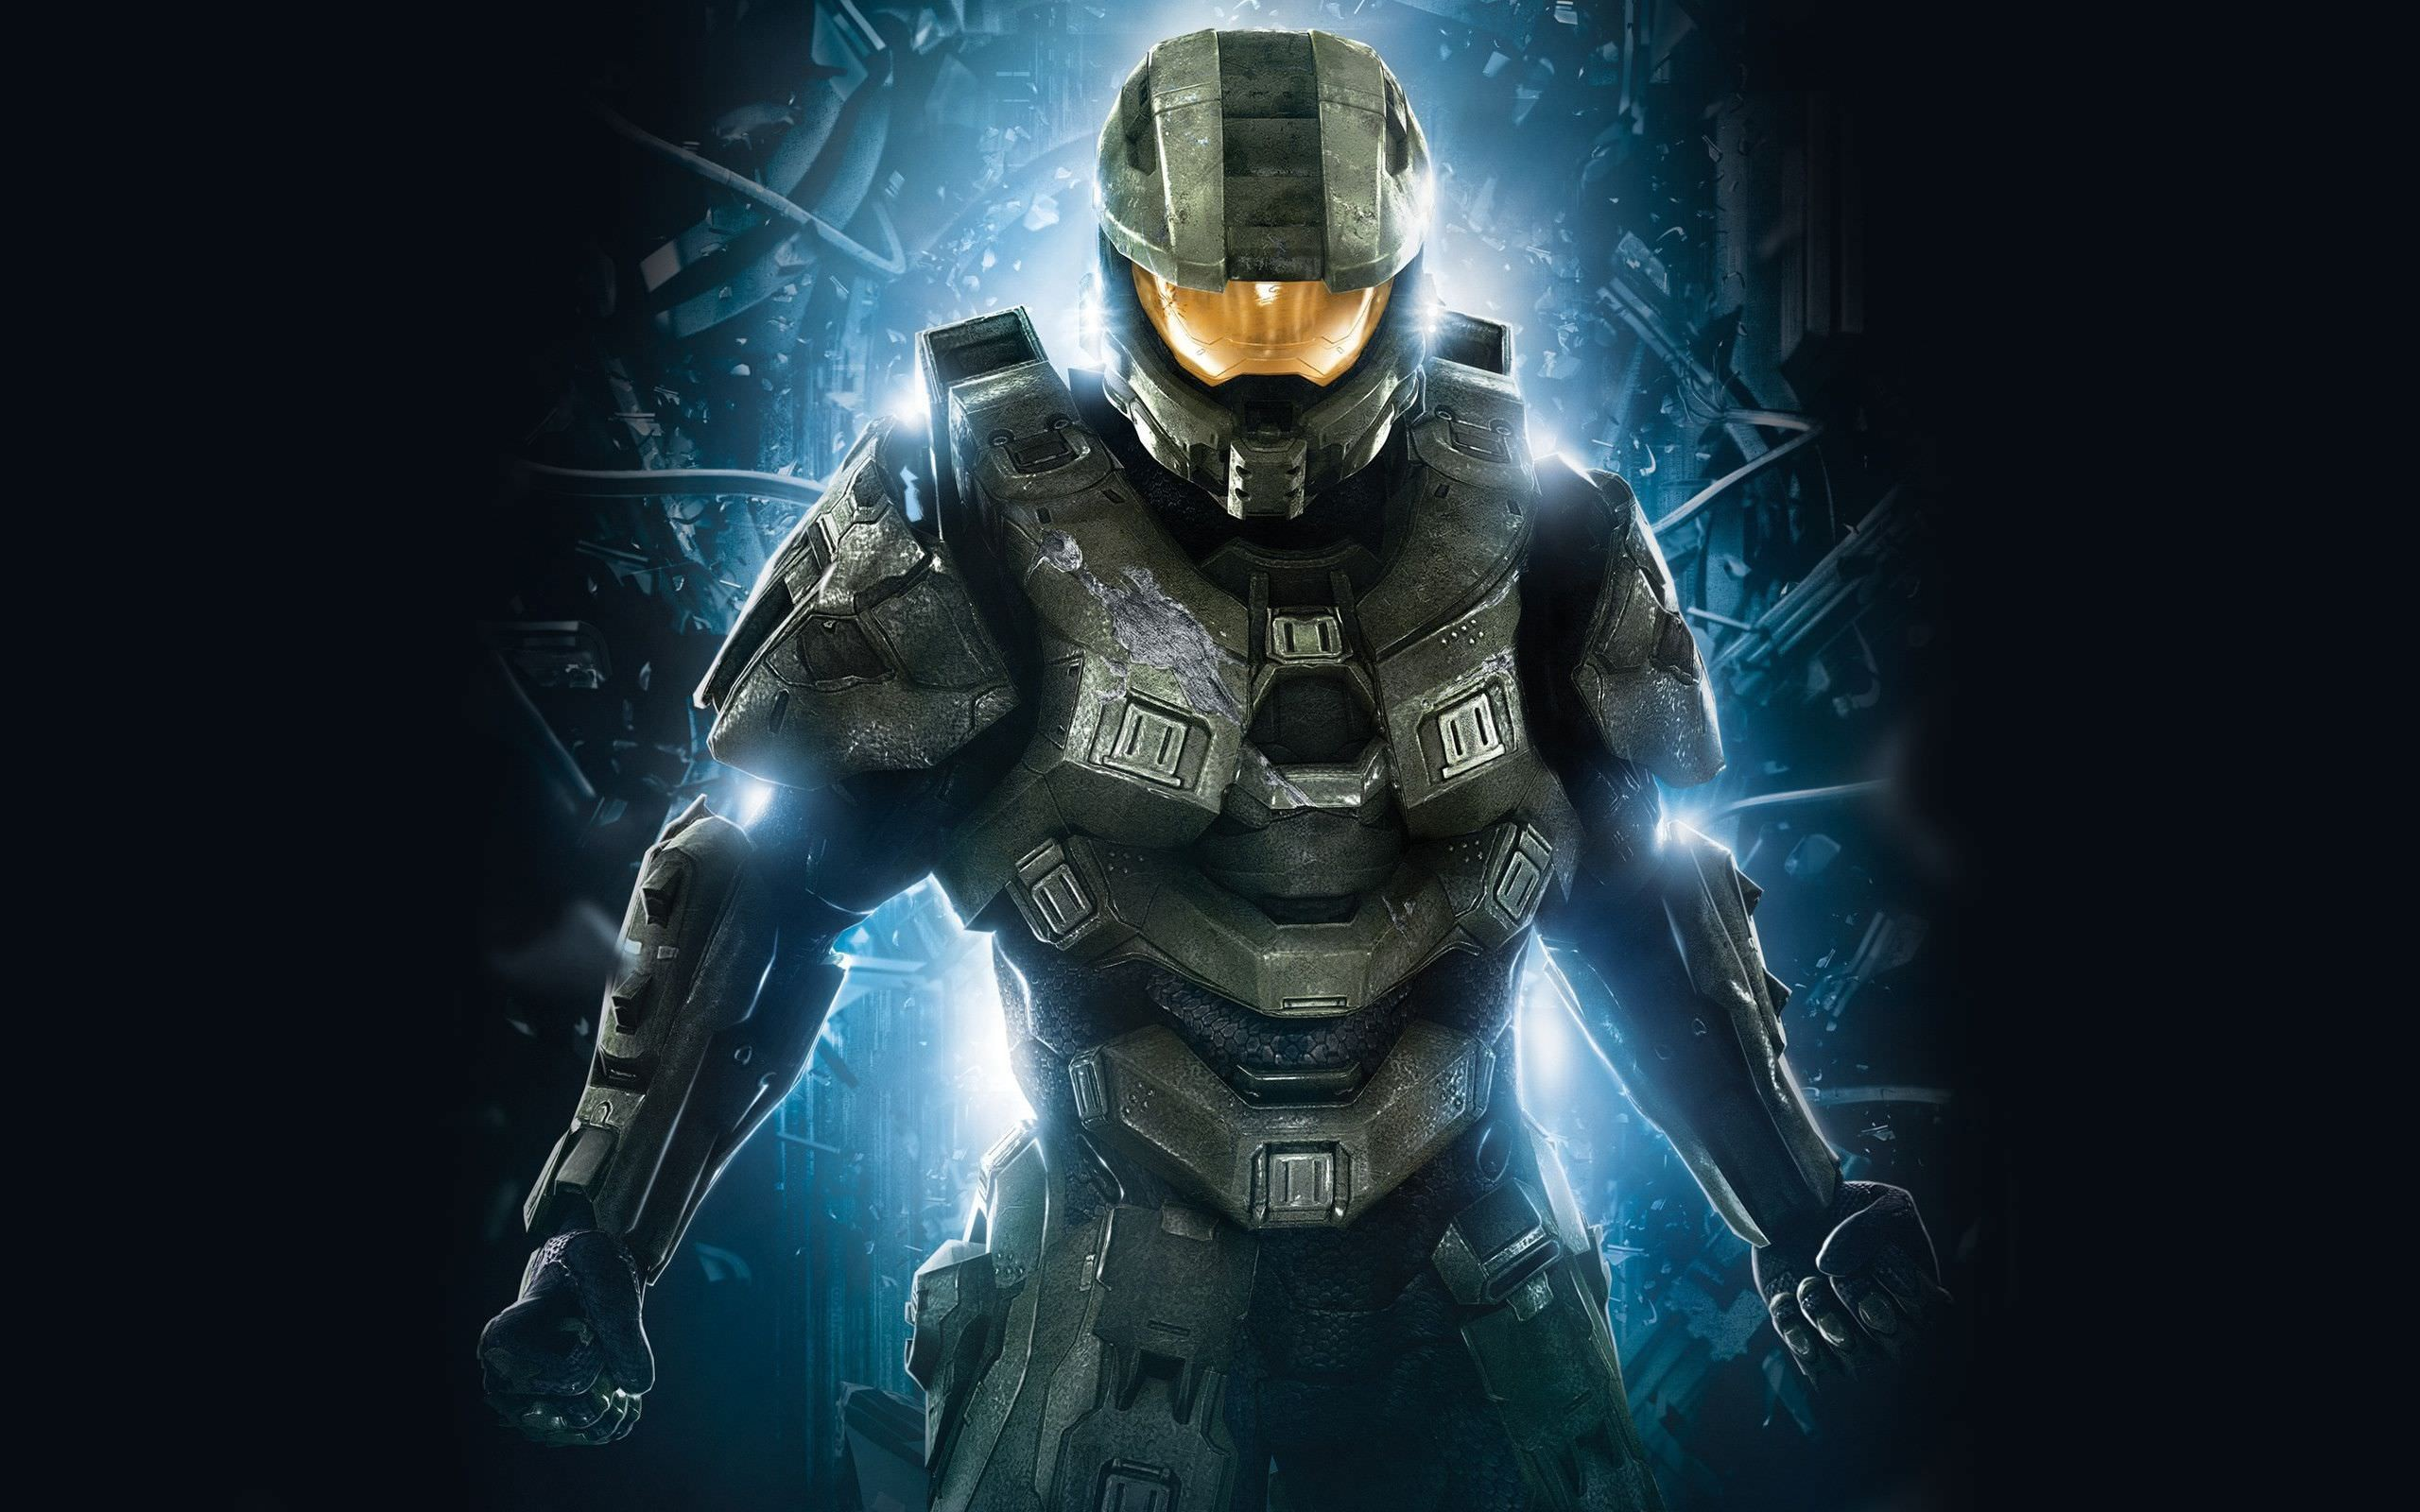 Halo Wallpaper ① Download Free Cool High Resolution Wallpapers For